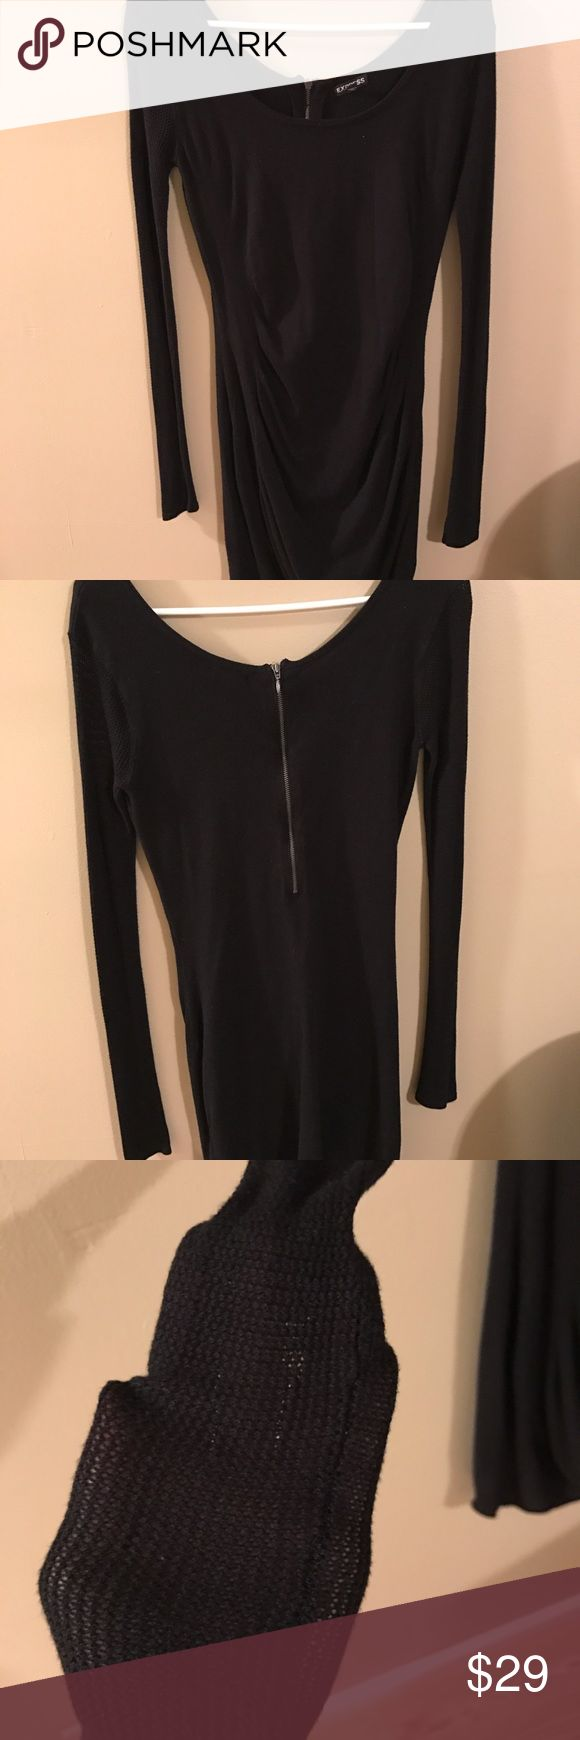 Black Express dress Cute dress worn twice. The sleeves are mesh. Can be dressed up or down. Express Dresses Midi